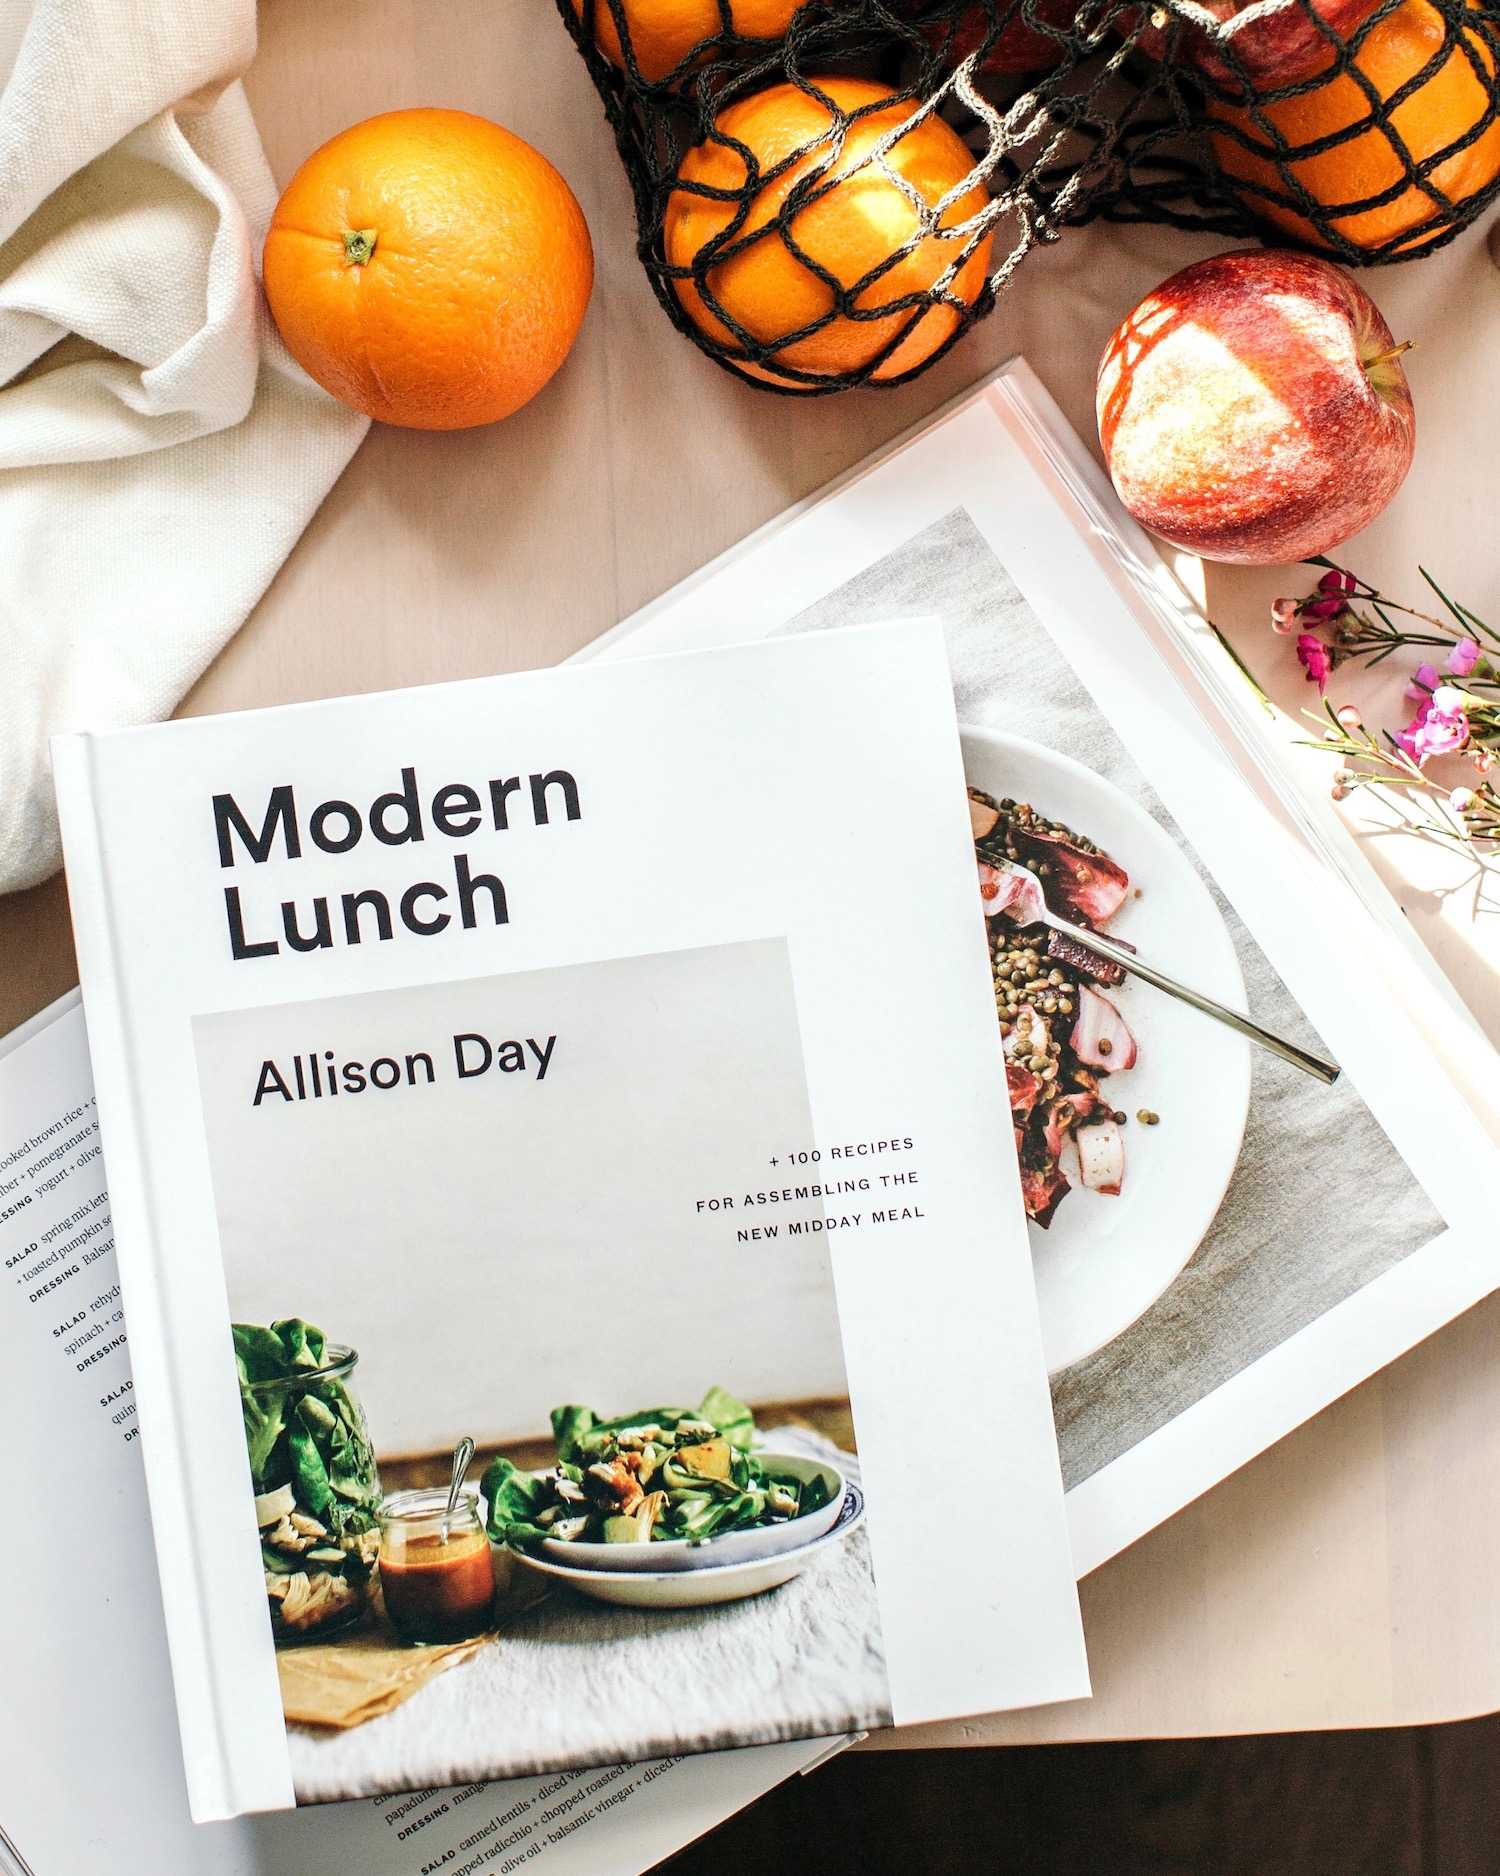 Modern Lunch by Allison Day - Cookbook - Appetite Random House Canada.JPG